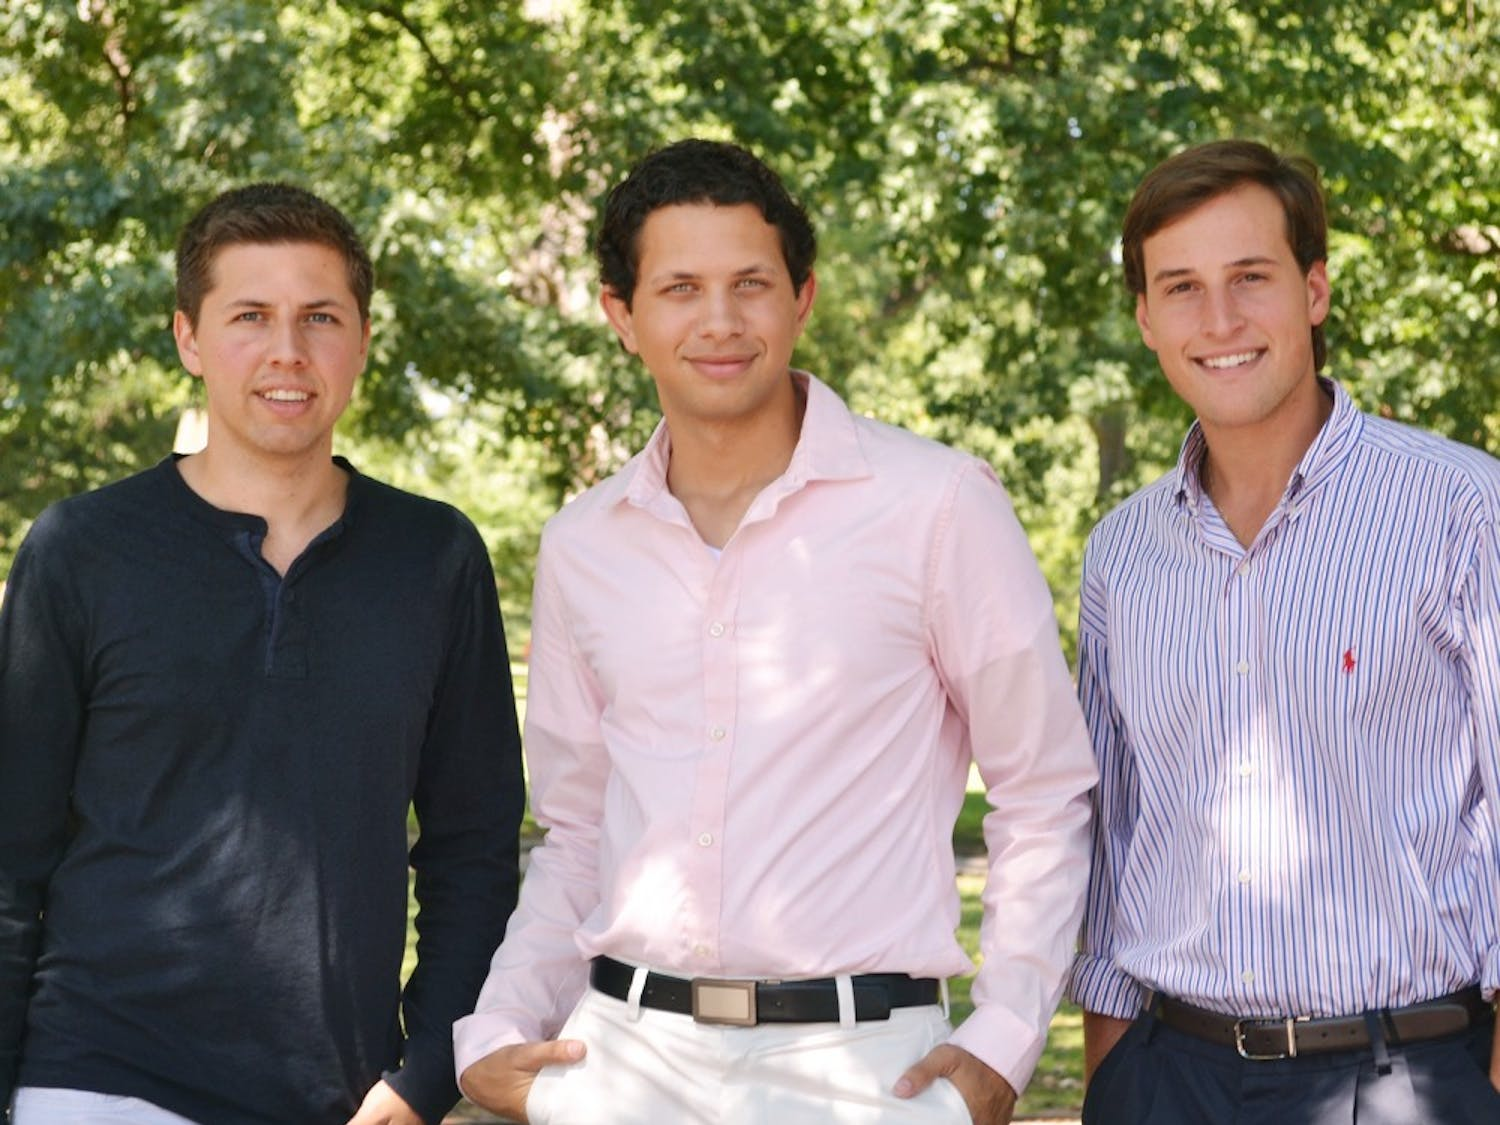 Jeff DeLuca, class of 2012, Matt Hughes, graduate student, and Greg Steele, senior  are all political science majors who have entered the political world.